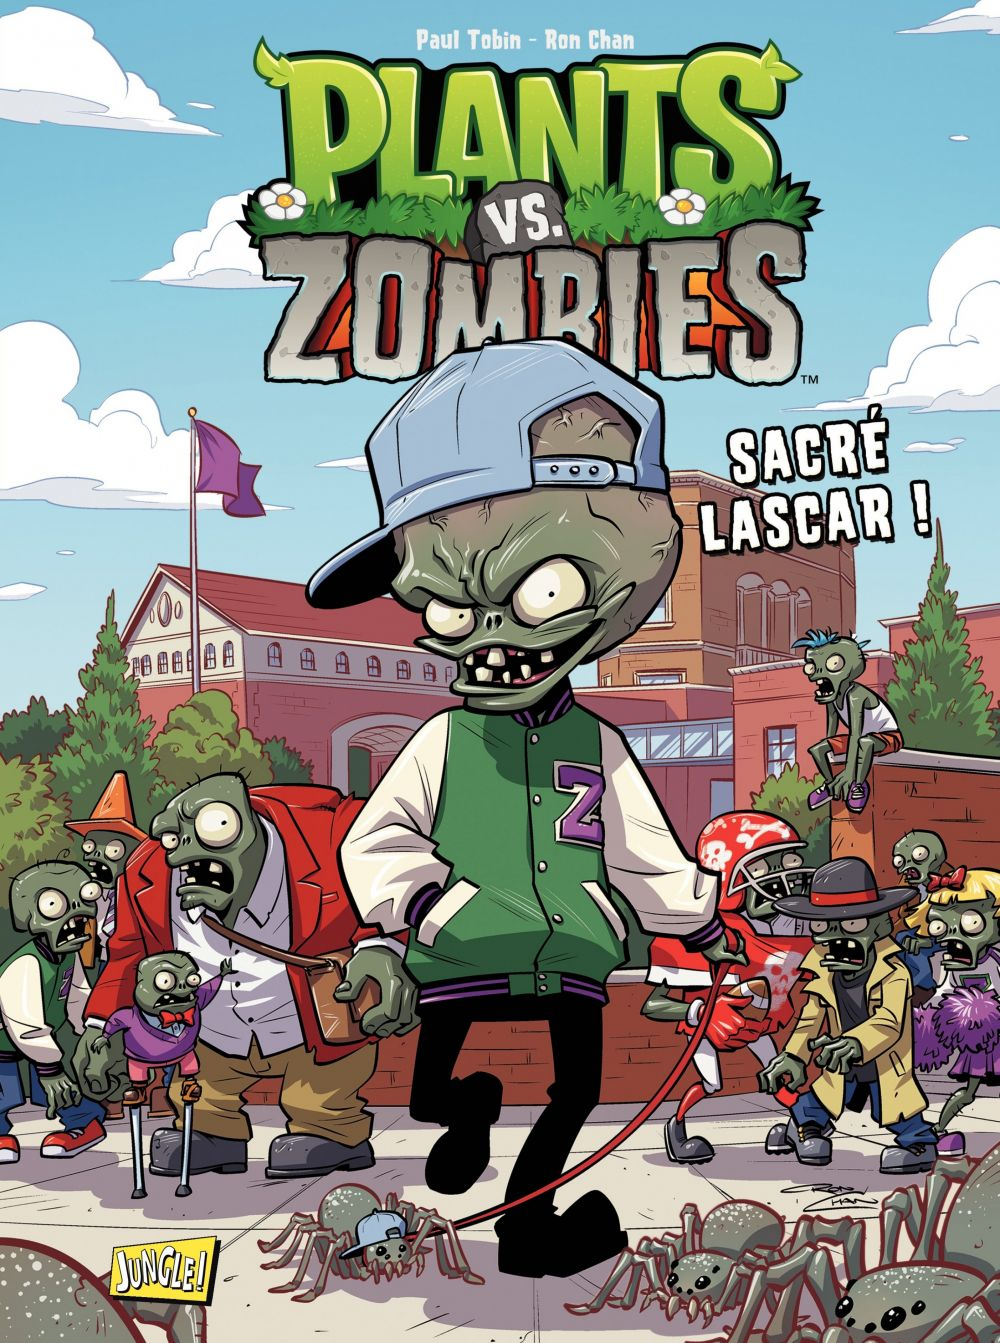 Plants vs zombies - Tome 3 - Sacré Lascar |